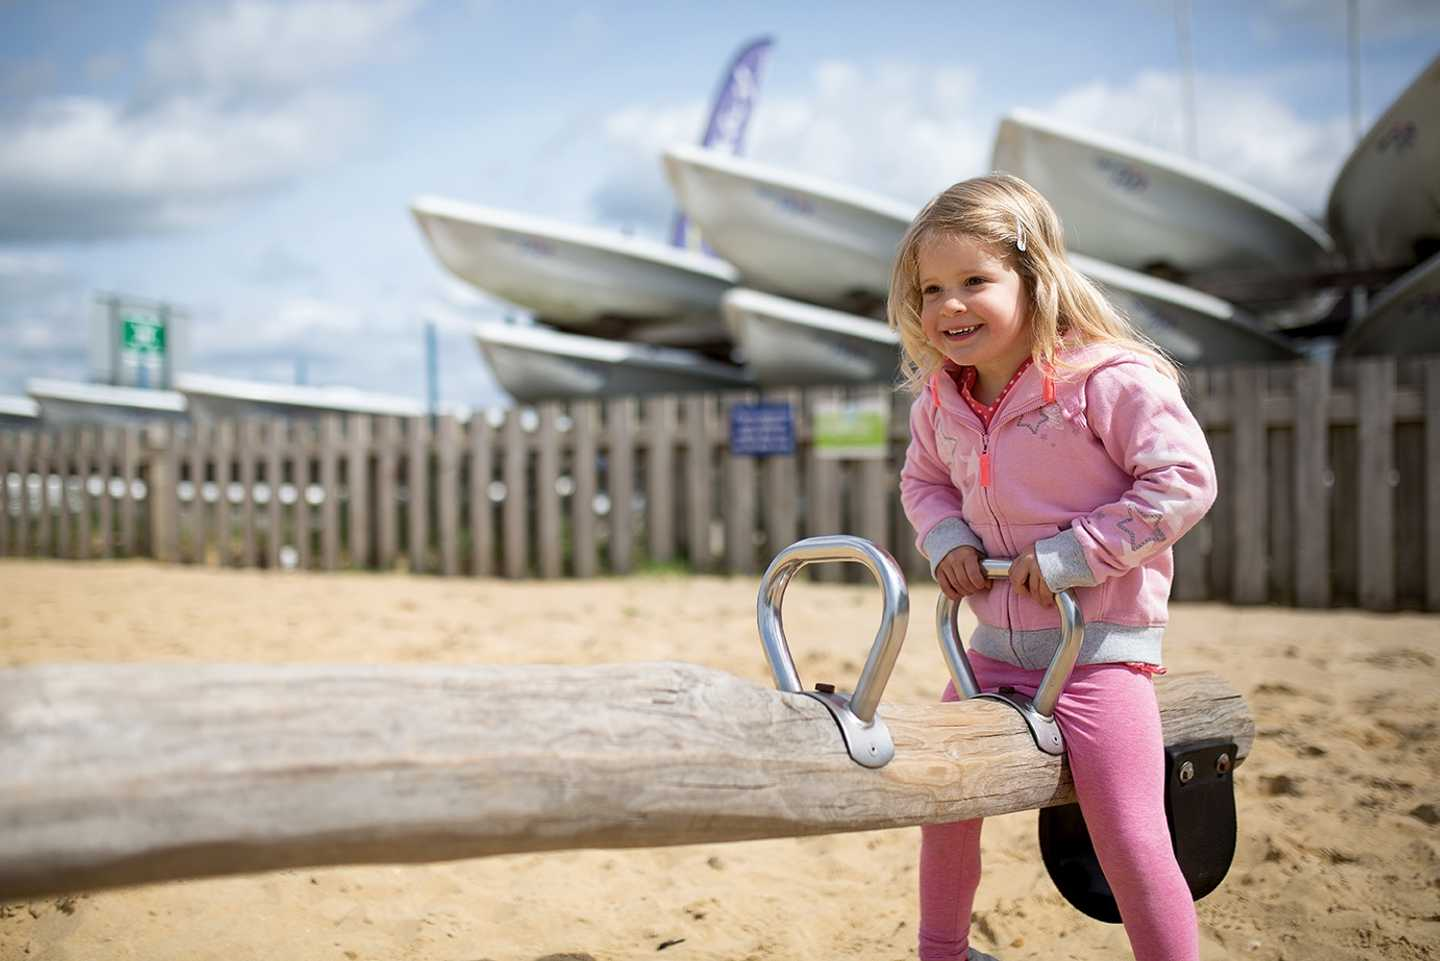 Children enjoying the wooden seesaw at the outdoor play area on the beach